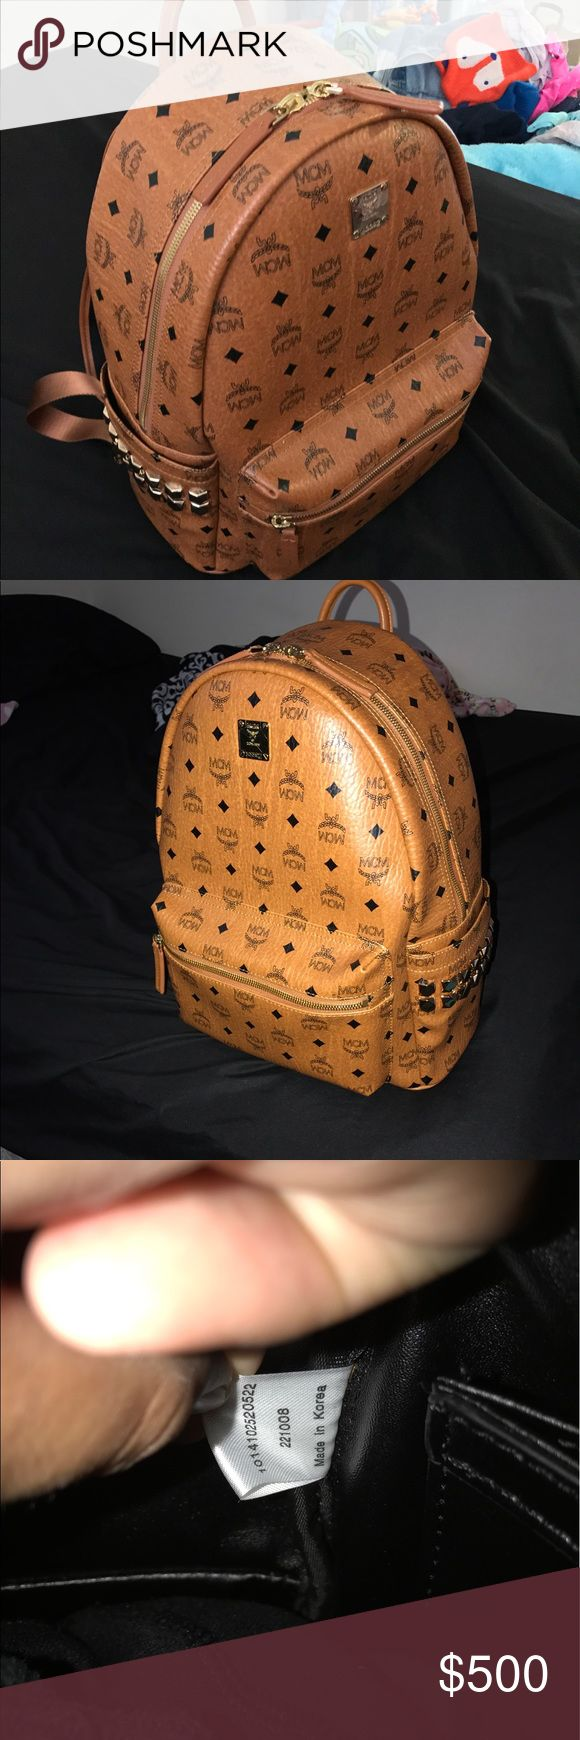 Mcm stark backpack Got a mcm stark backpack in great condition this is the latest version of the bag retail about $790 but letting go for a cheaper price since I've used it do not ask questions that are waste of time if you have a offer send it thru the offer yes it's authentic comes with the care cards I lost the dust bag when i was moving this will sale fast price asking $500 MCM Bags Backpacks